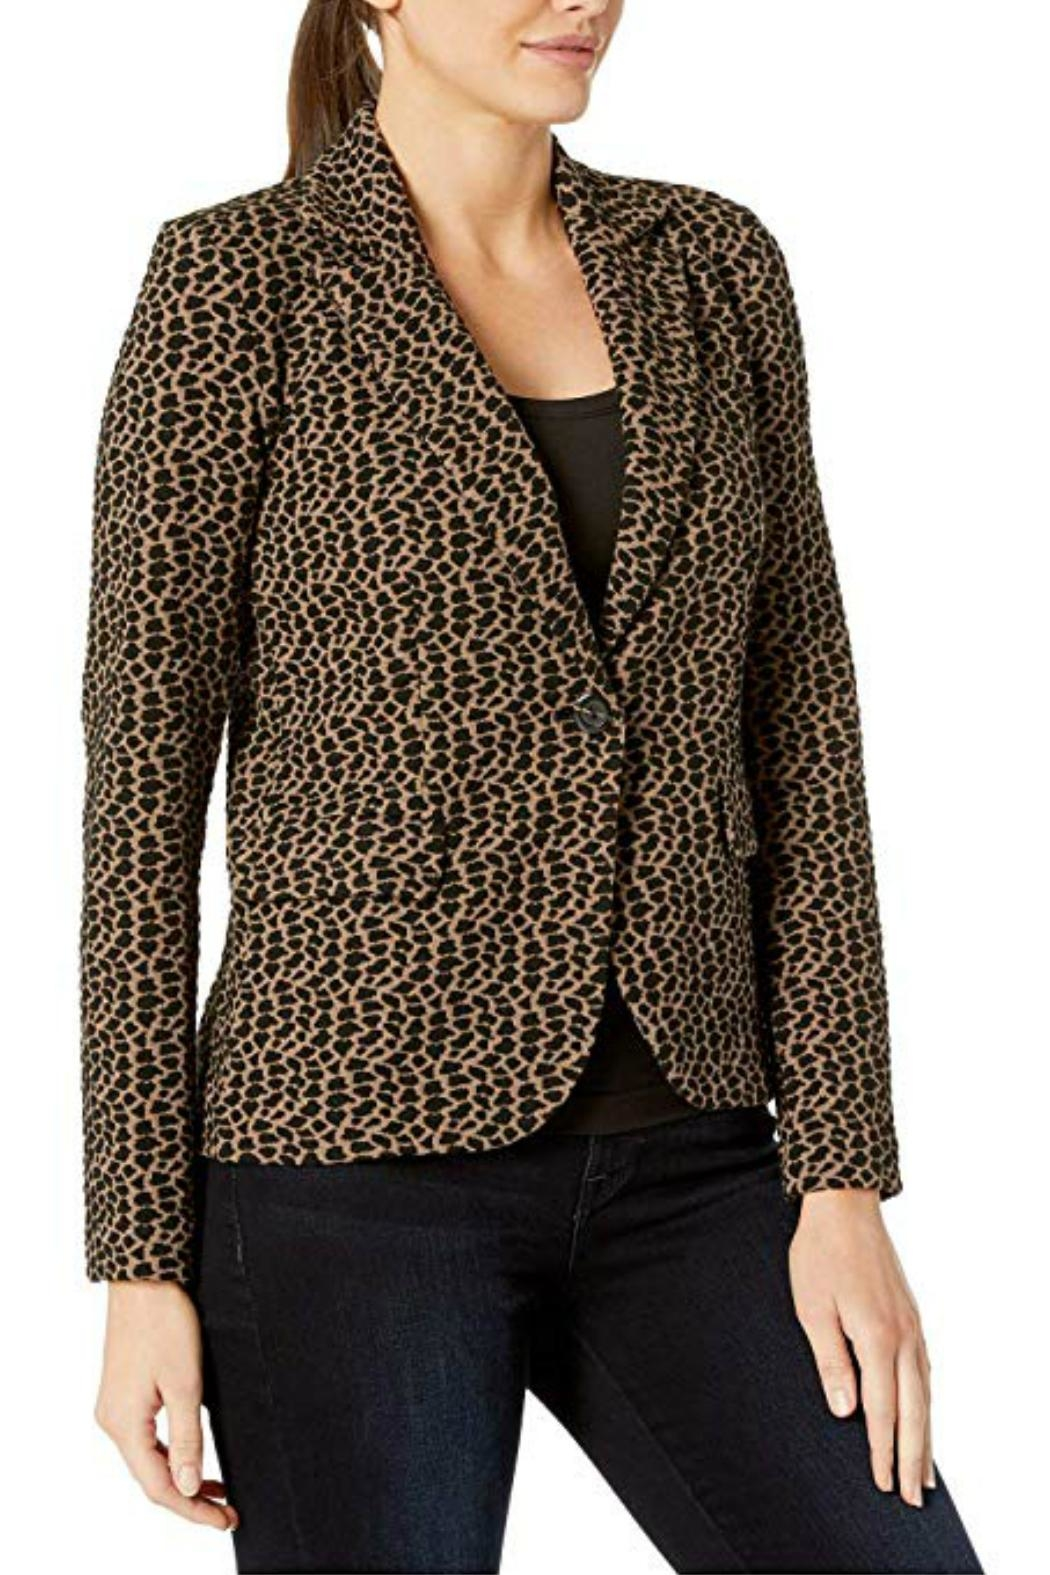 Elliott Lauren Animal Print Jacket - Side Cropped Image